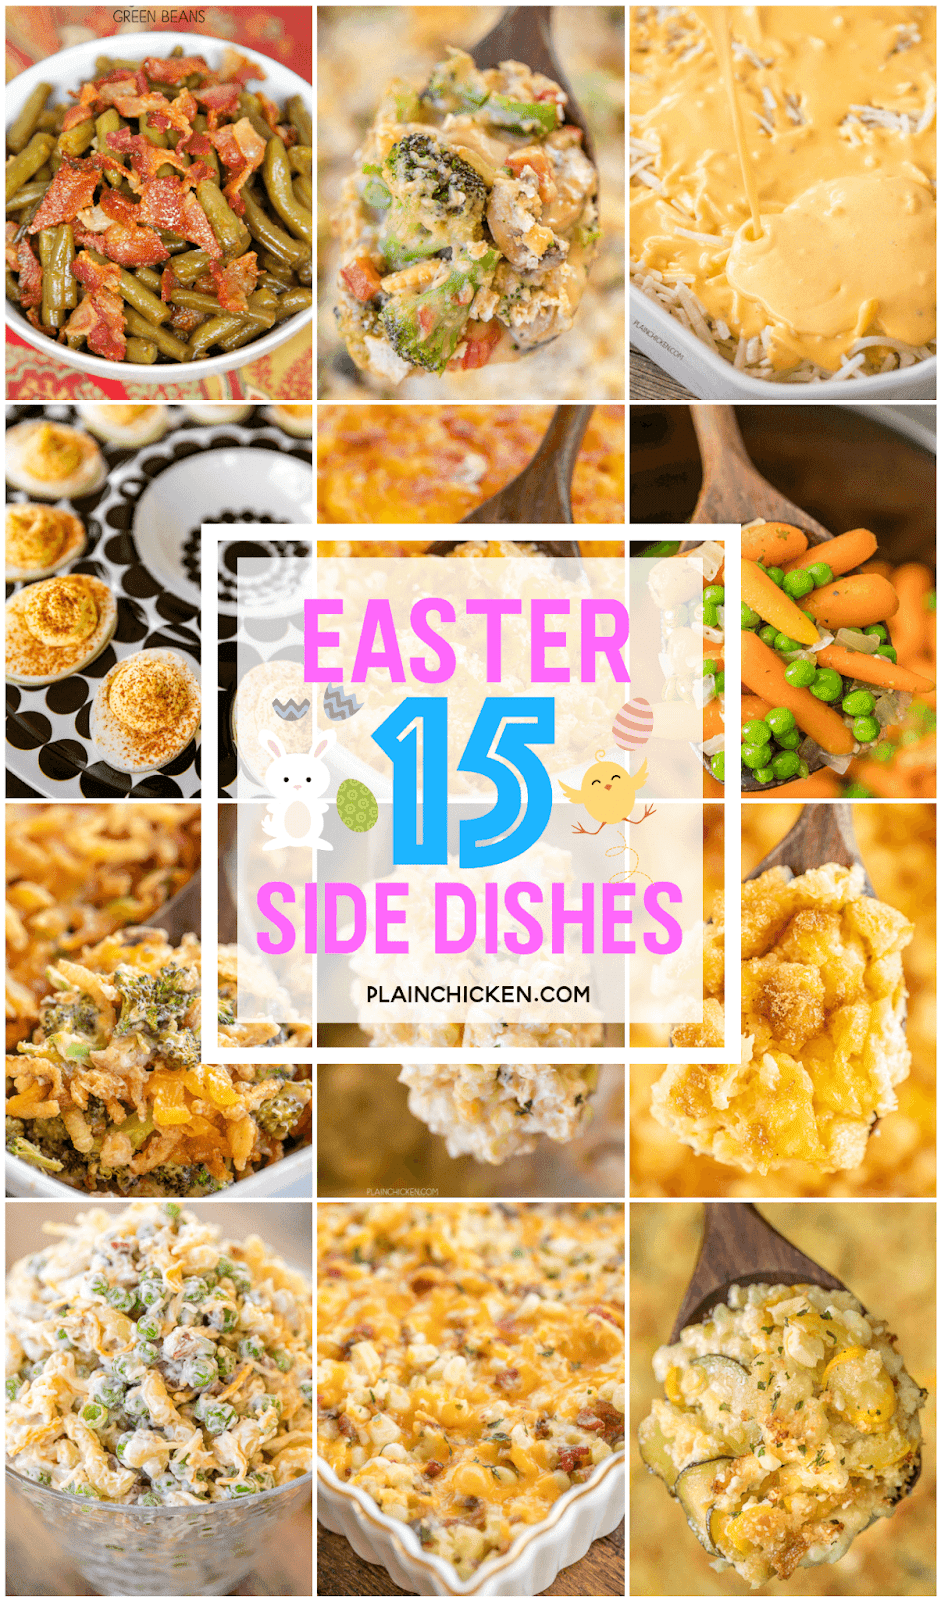 Top 15 Side Dishes For Easter Dinner Plain Chicken